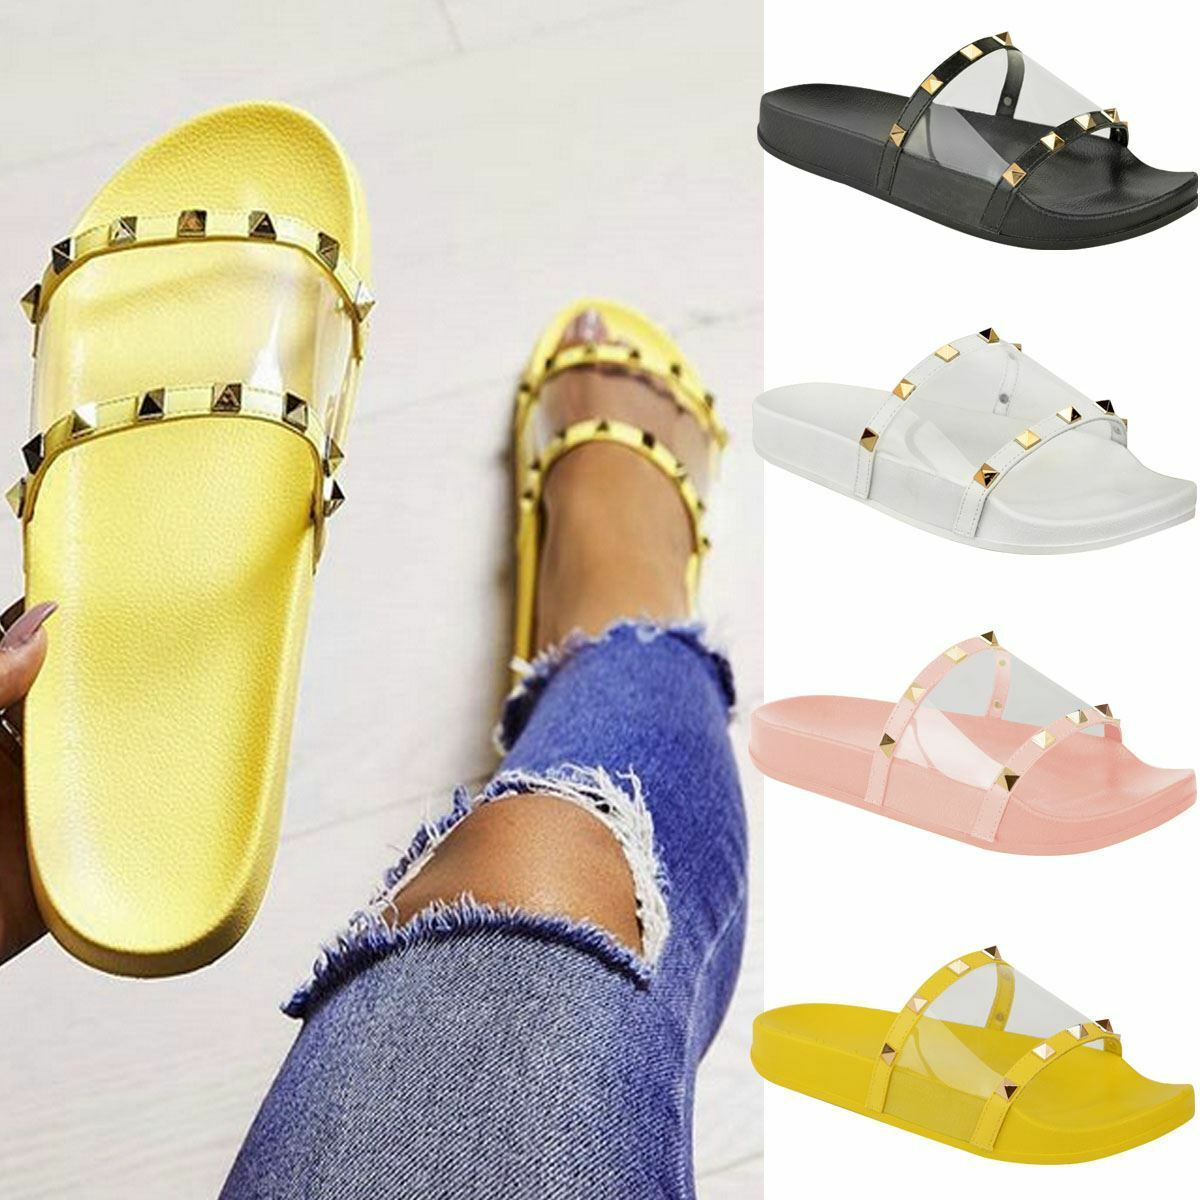 Womens Flat Summer Slip On Sandals Slides Summer Flat Studded Mules Perspex Sliders Holiday 7f3748